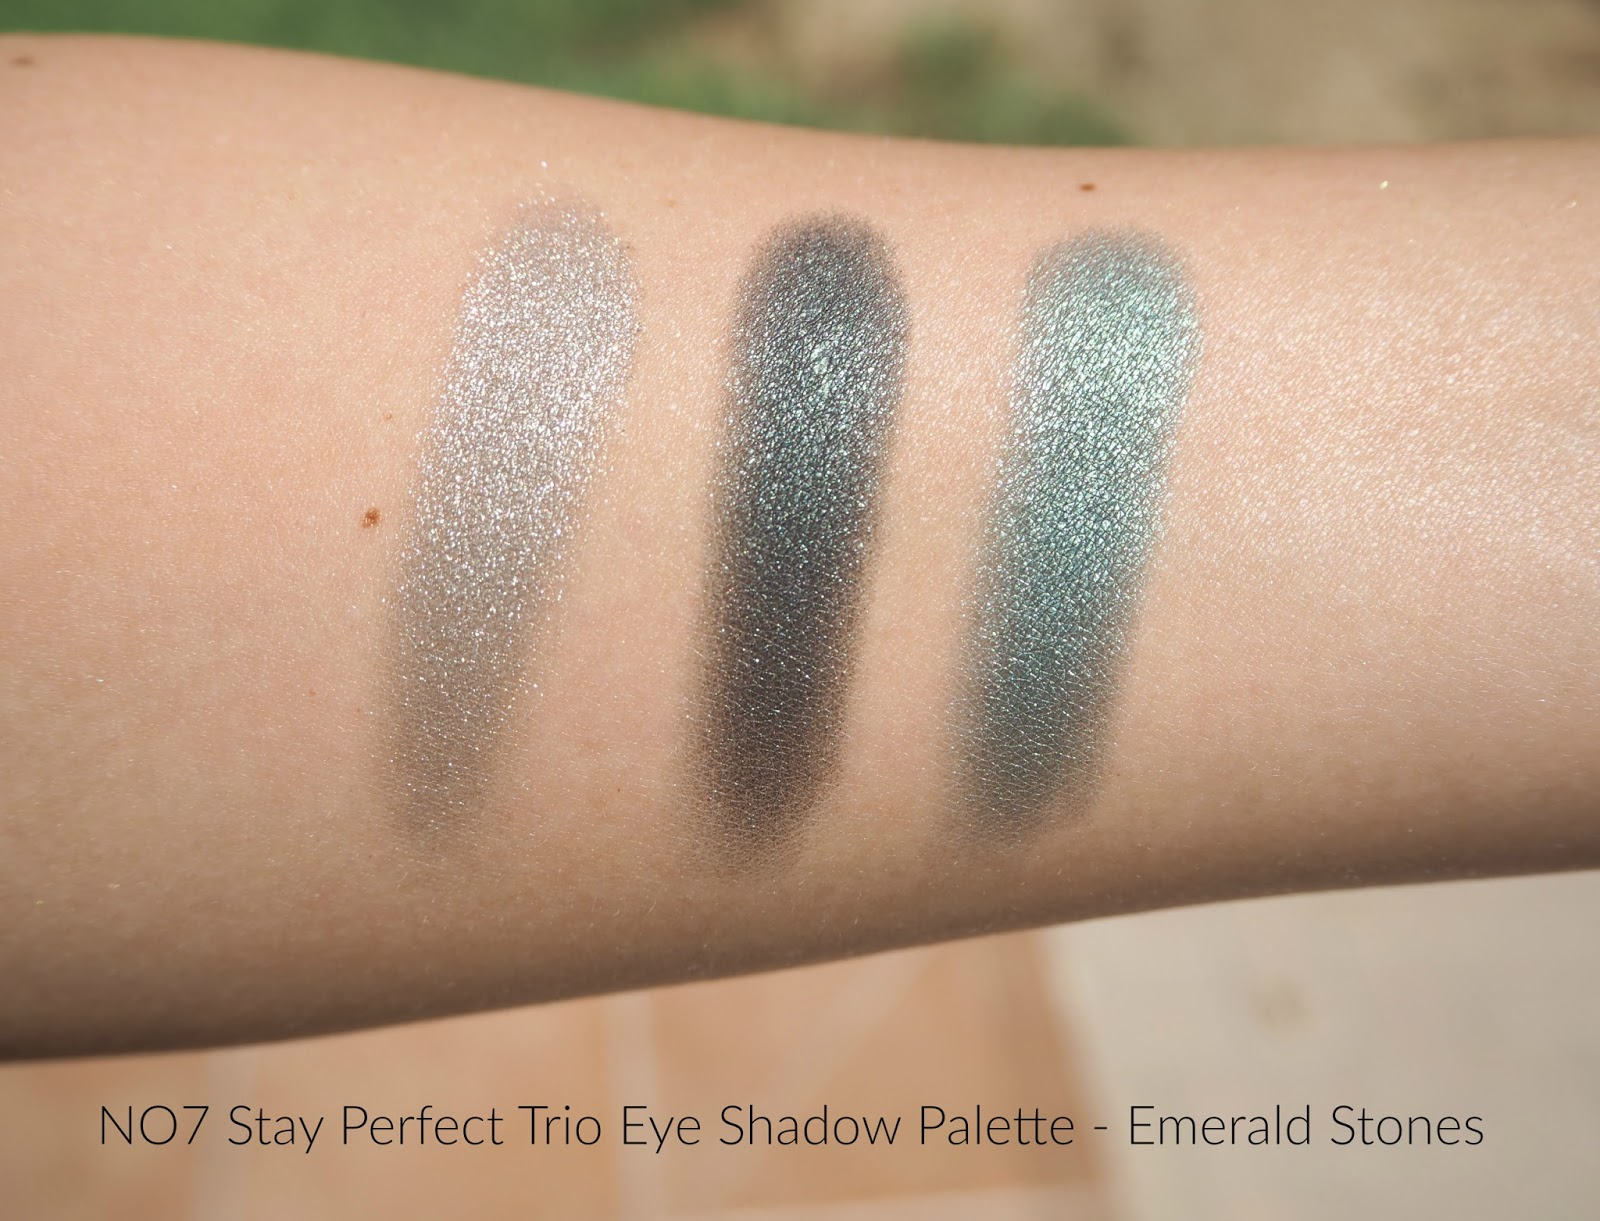 No7 Stay Perfect Trio Eye Shadow Palette Emerald Stones Review and Swatches